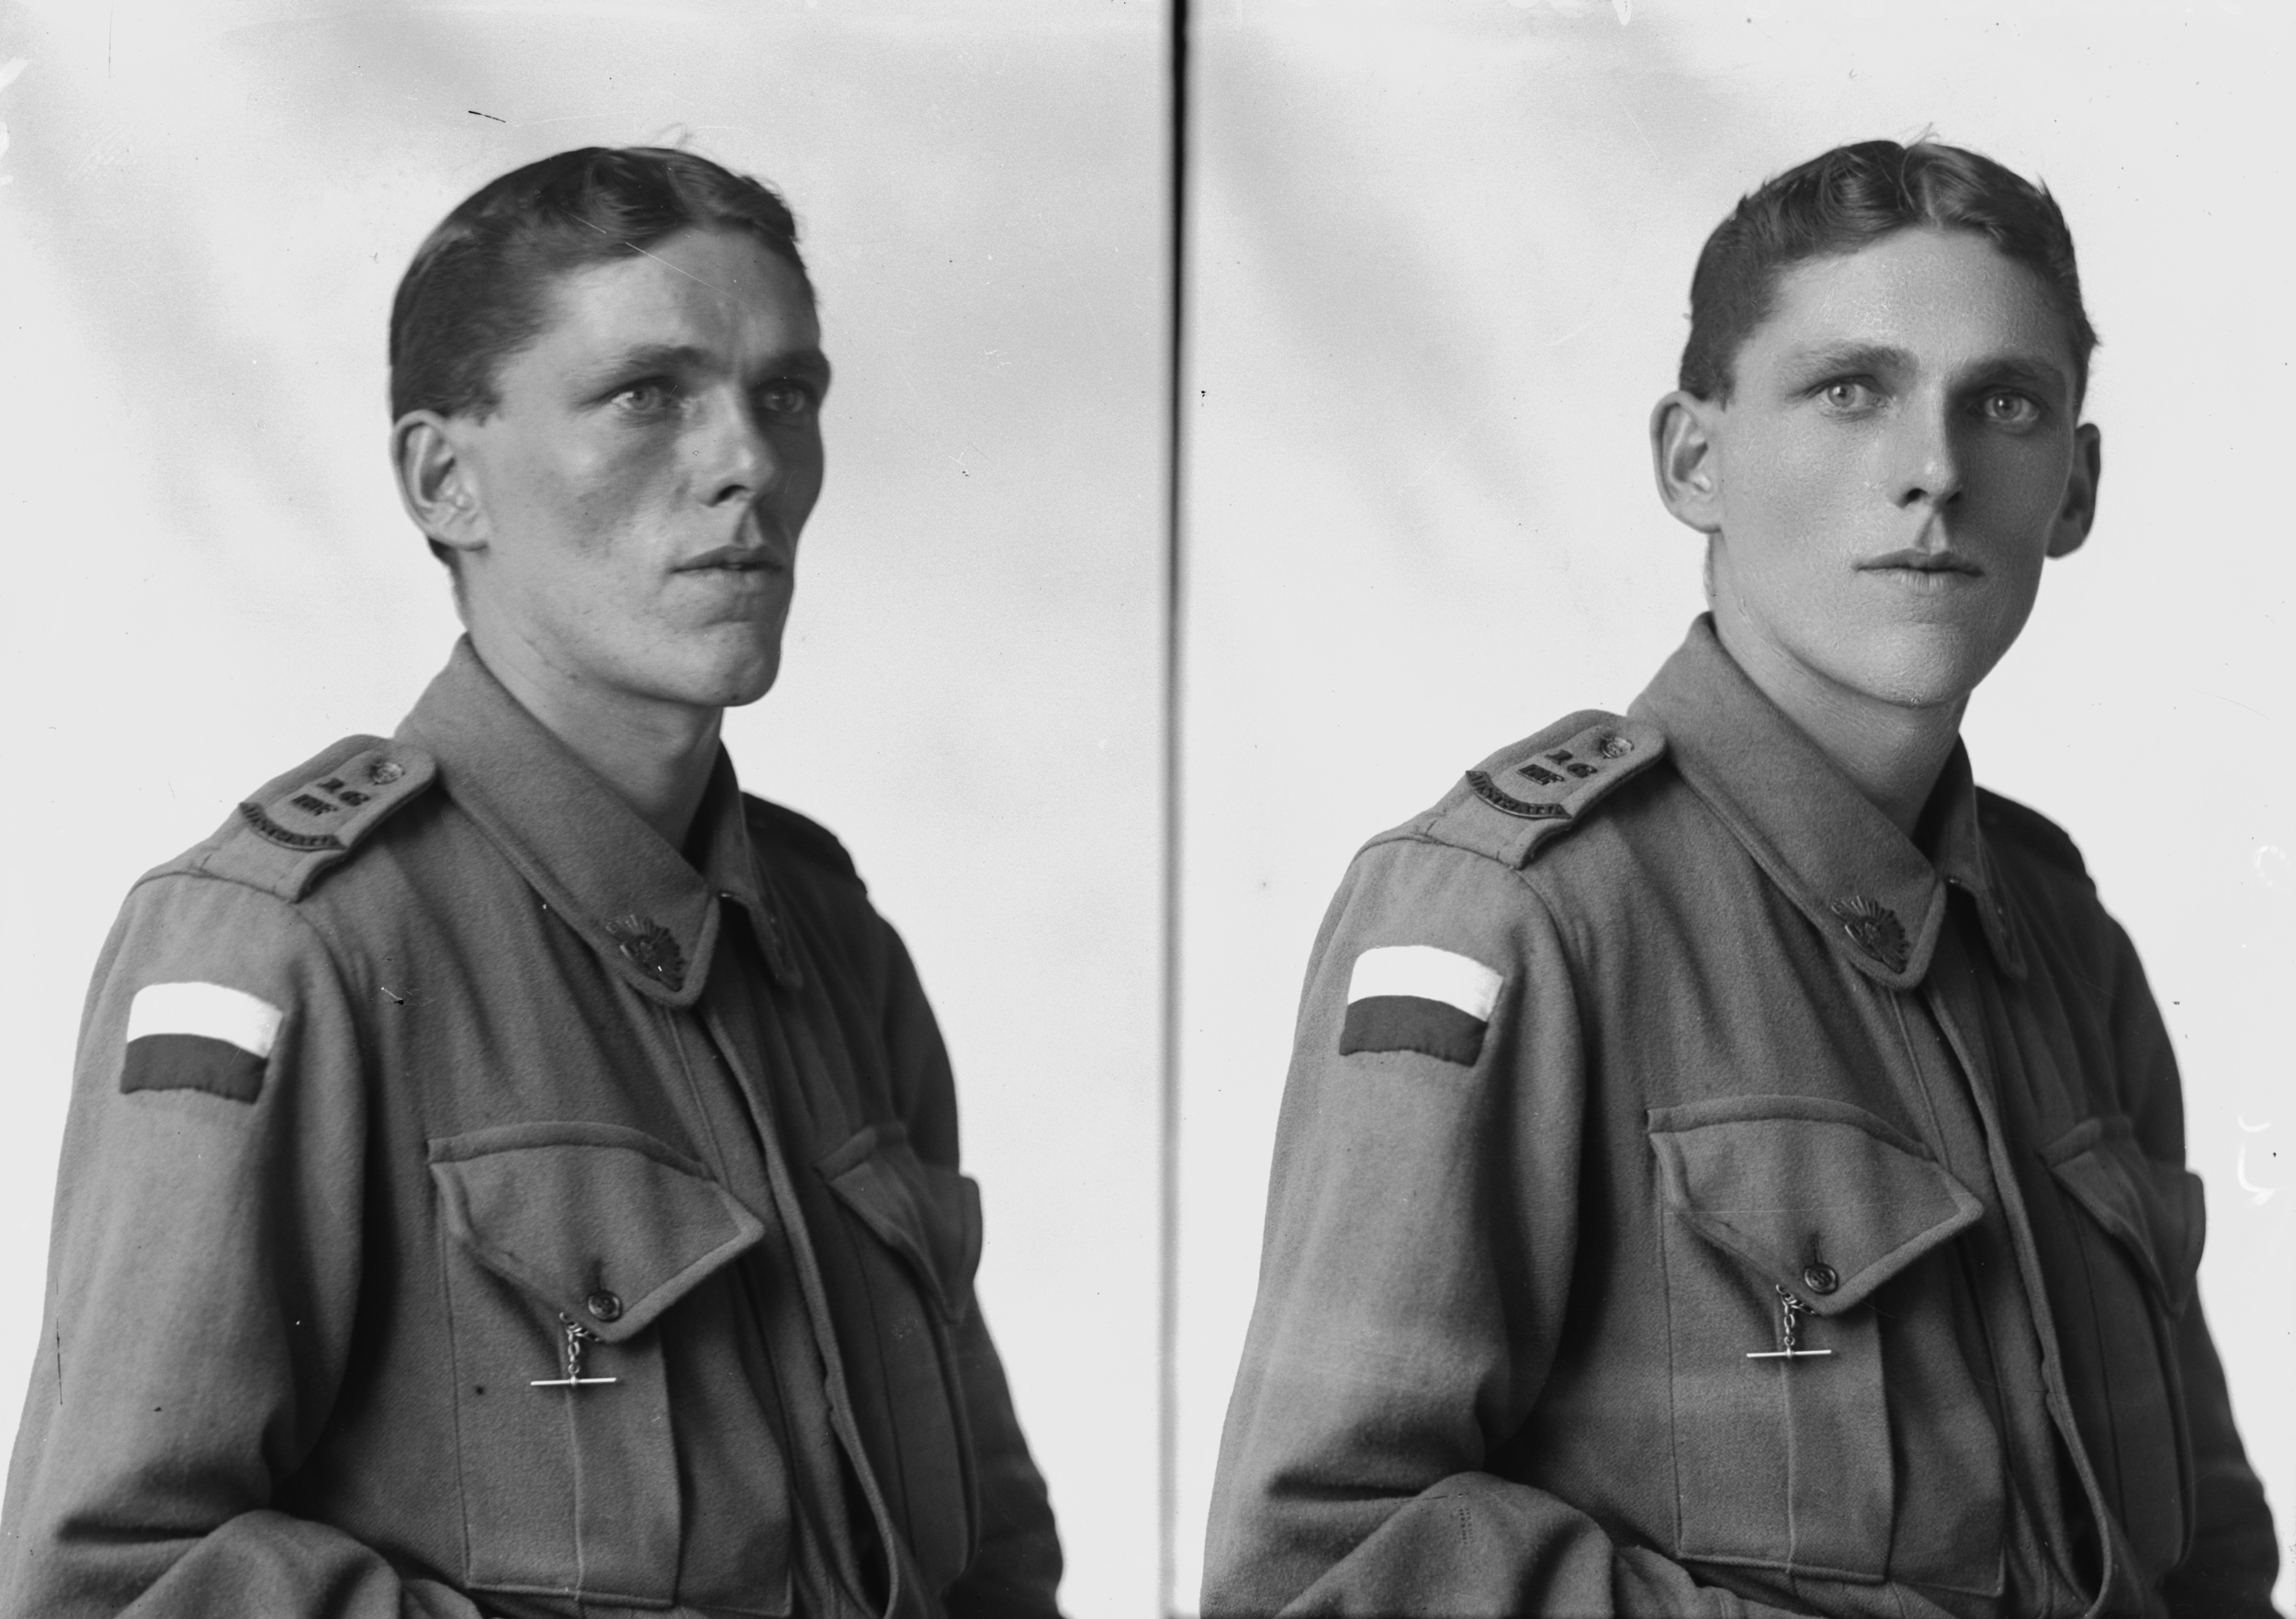 Photographed at the Dease Studio, 117 Barrack Street Perth WA Image courtesy of the State Library of Western Australia: 108035PD